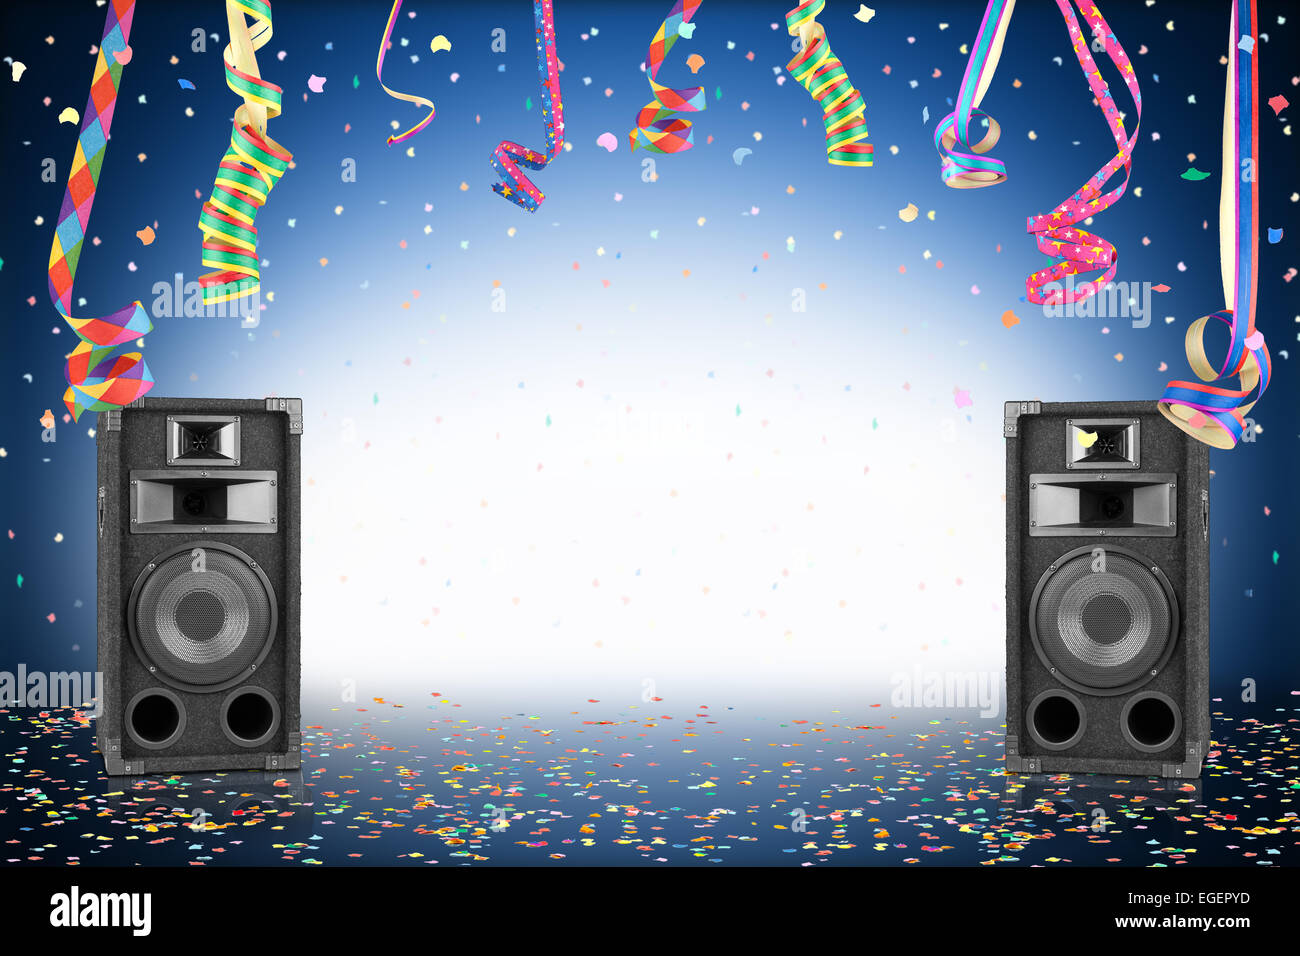 Party background with confetti, streamer and speakers Stock Photo